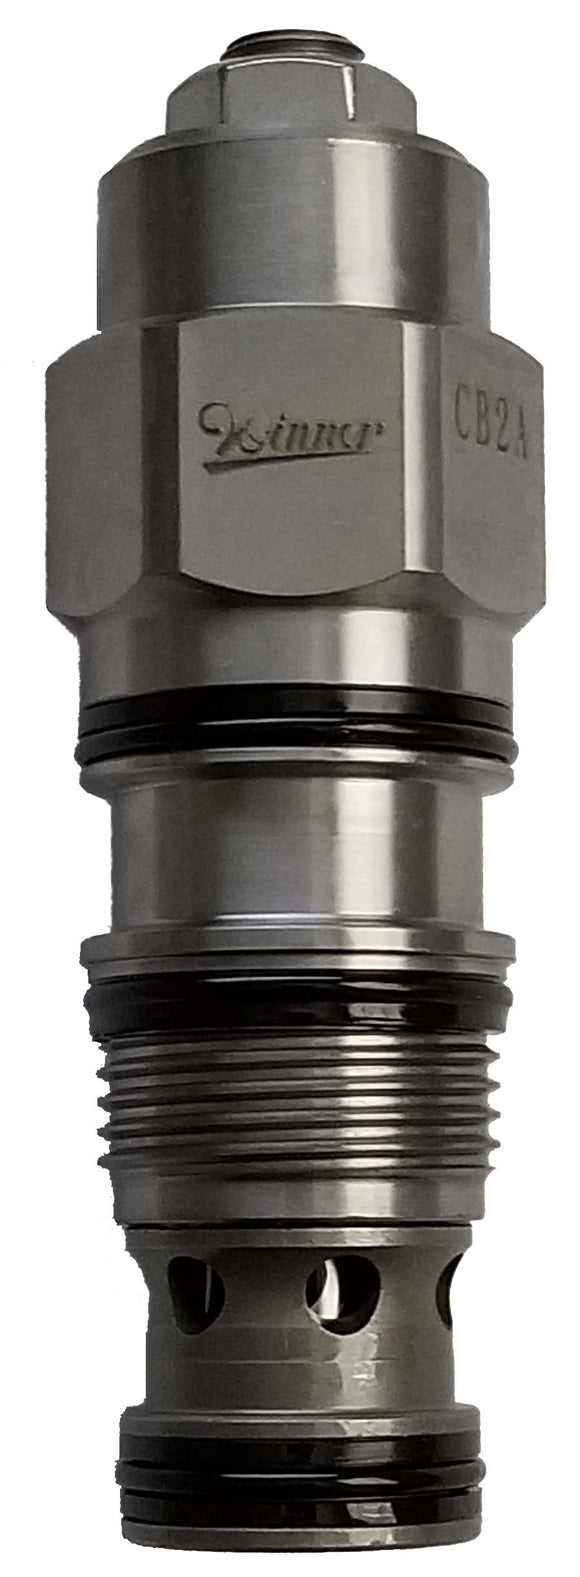 CB2A33IL<br>Counterbalance Valve<br>(Replaces Sun CBEA-LIN)